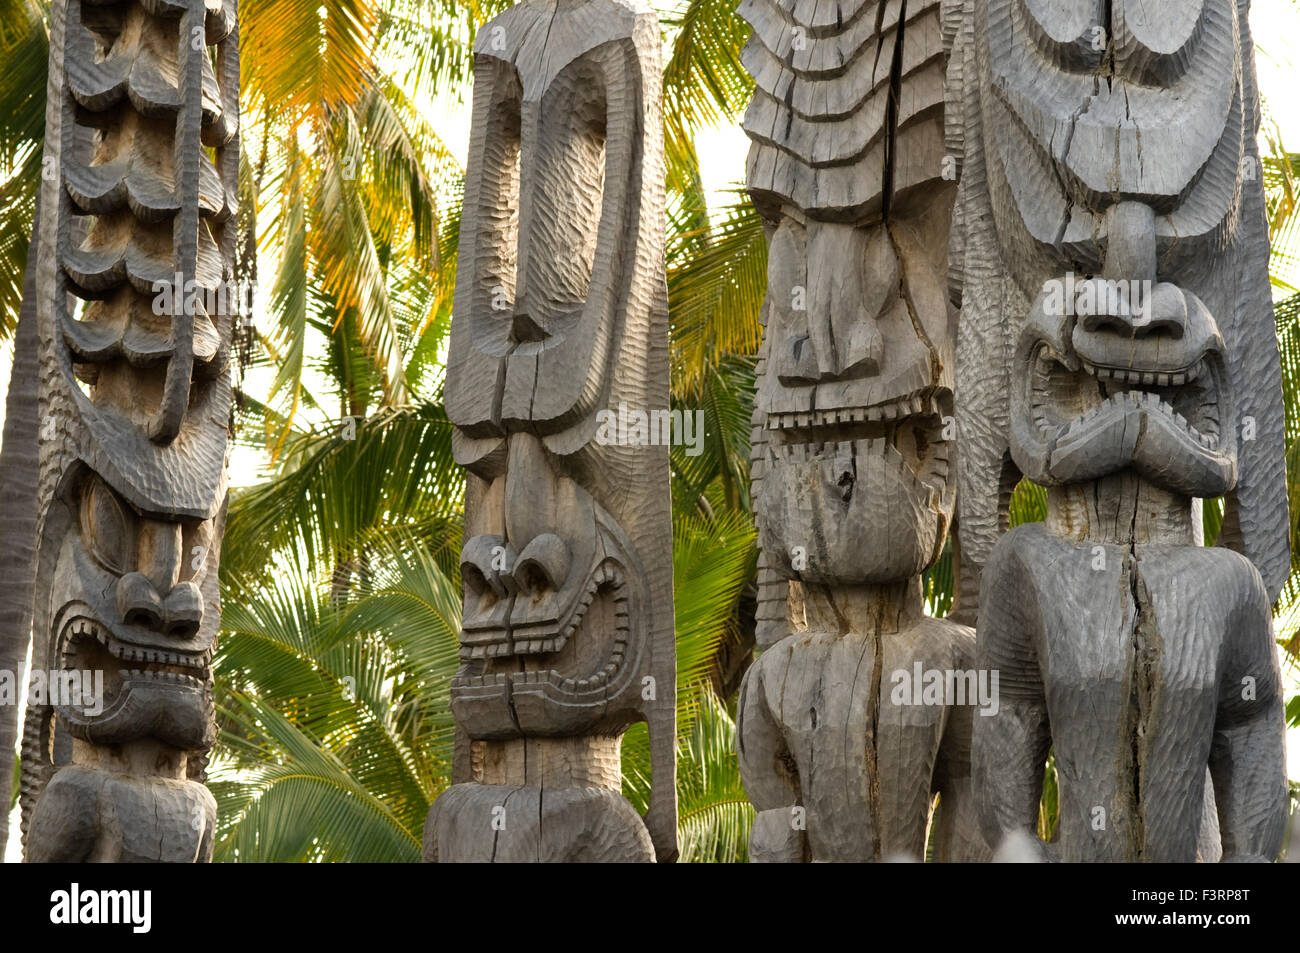 Pu'uhonua O Honaunau National Historic Park, Hale O Keawe reconstructed temple with wood carvings, South Kona Coast, Stock Photo